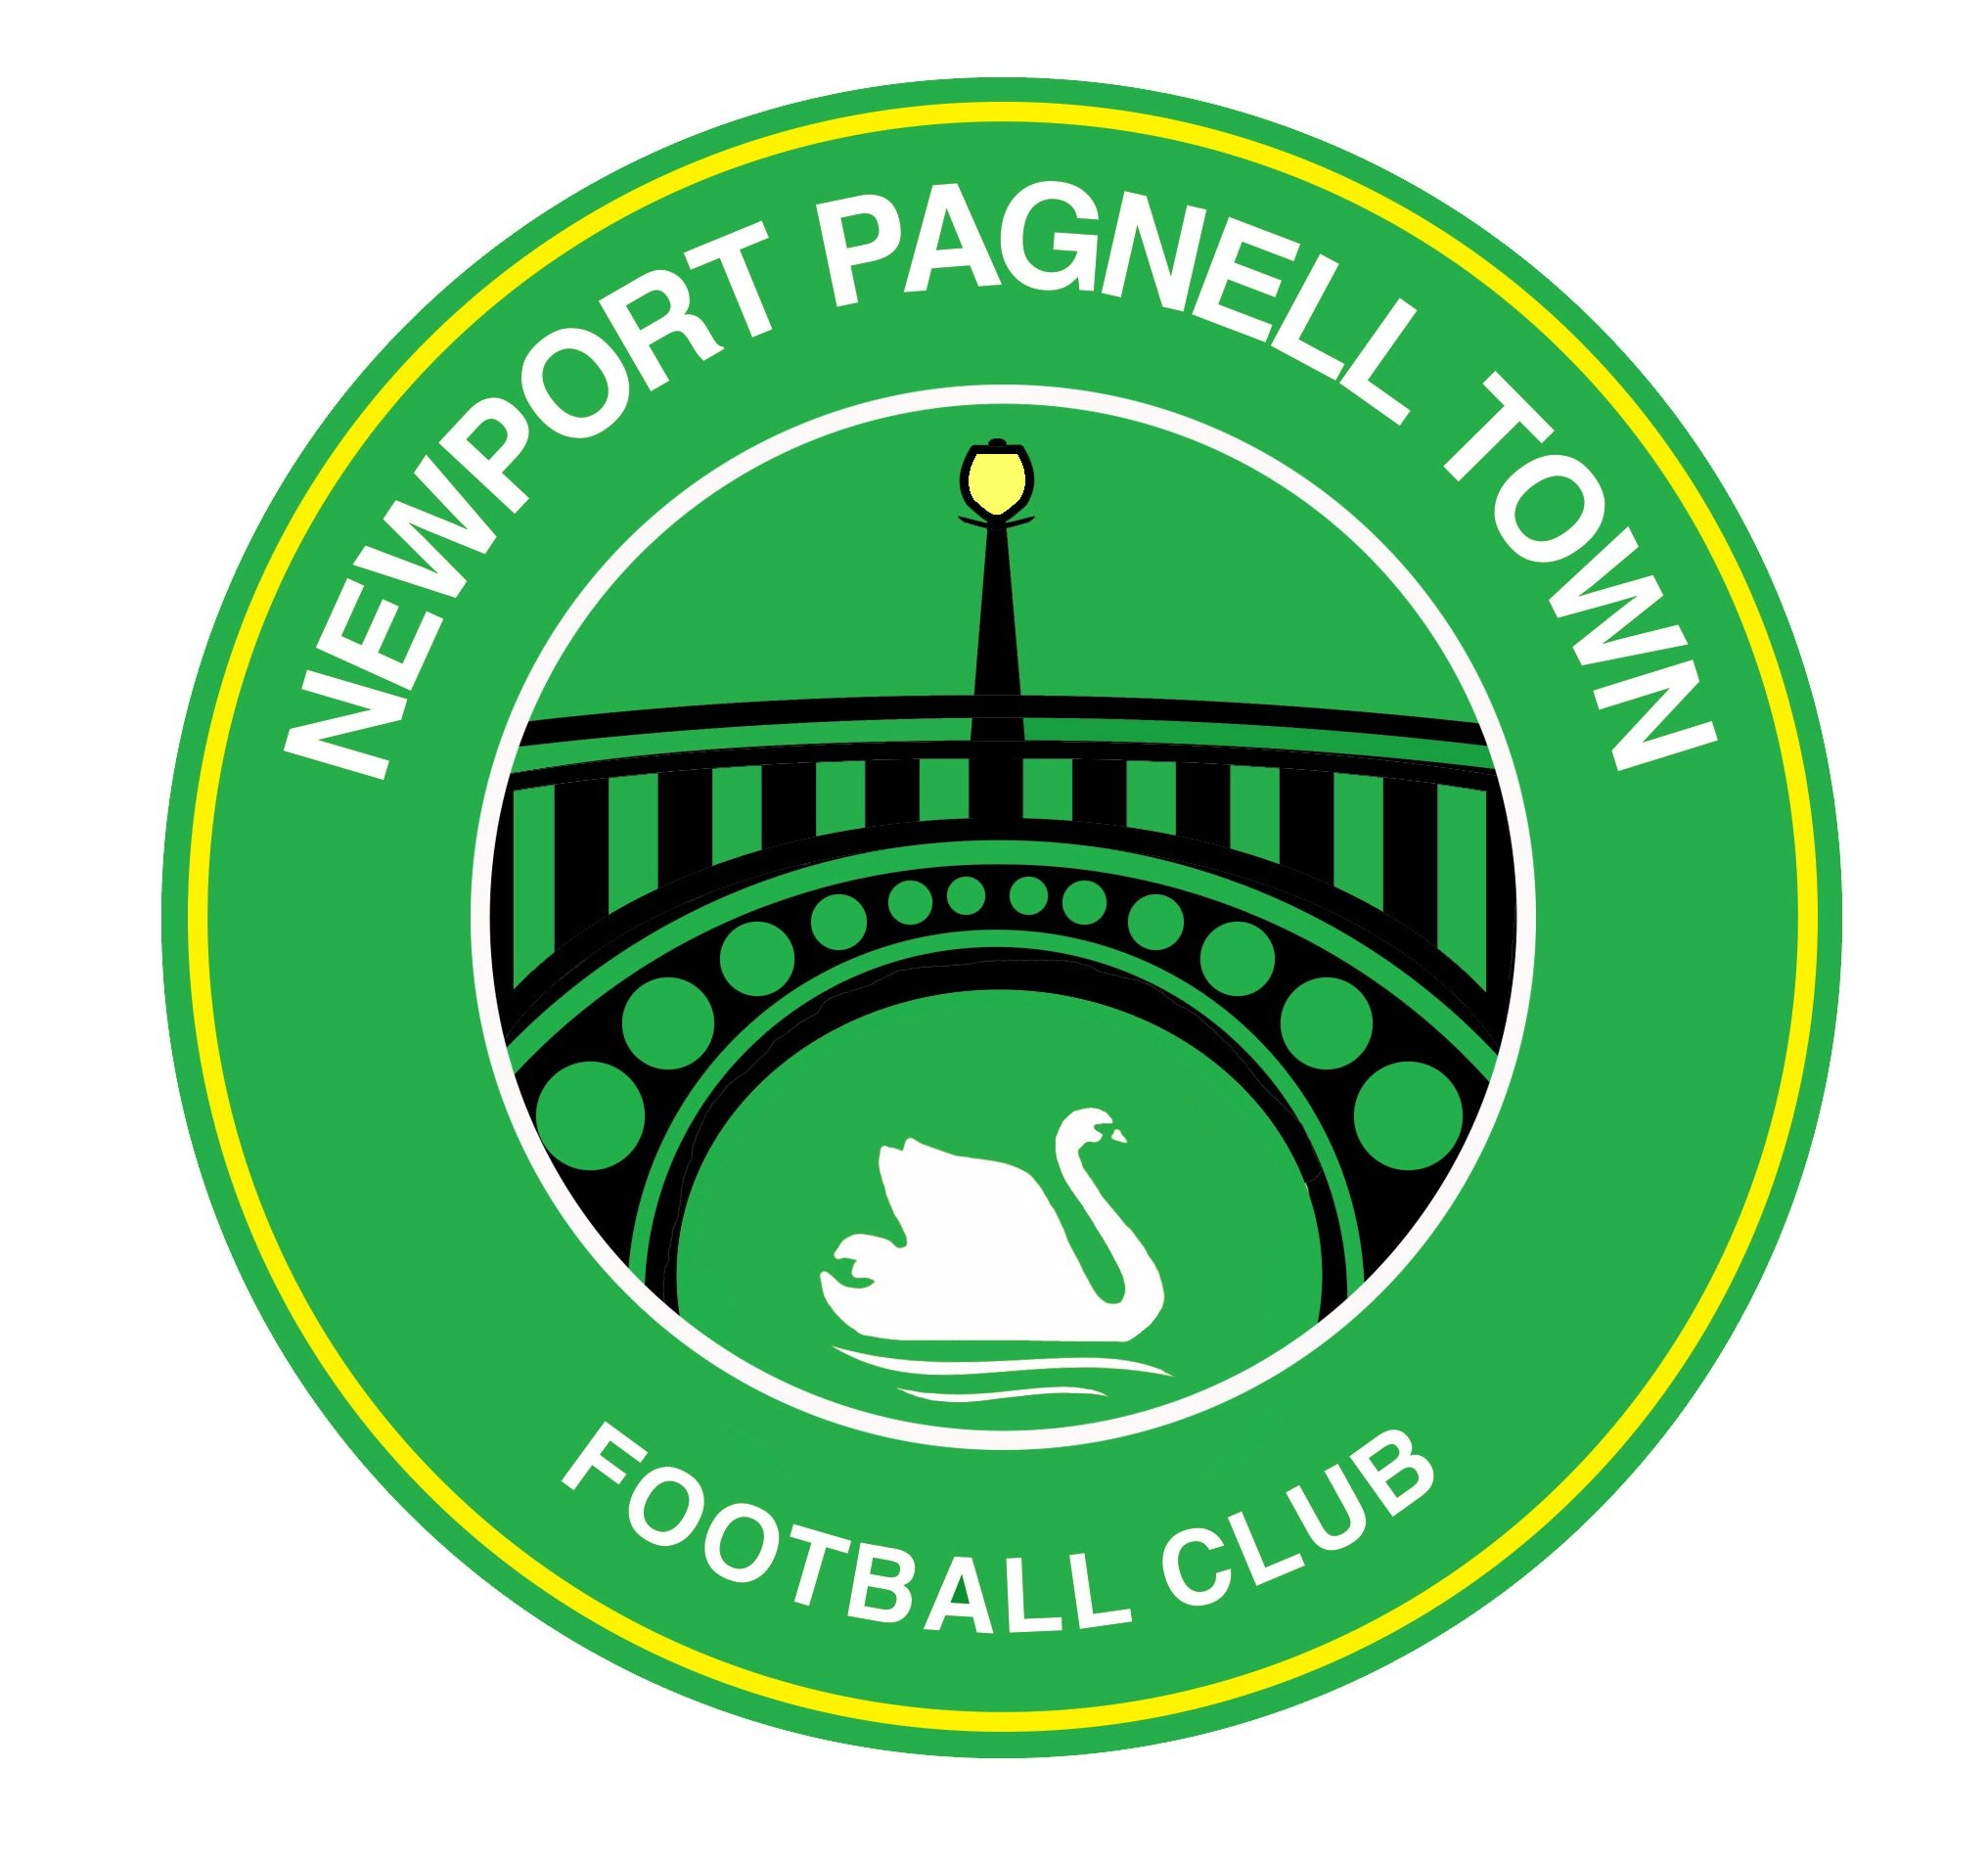 Newport Pagnell Town FC